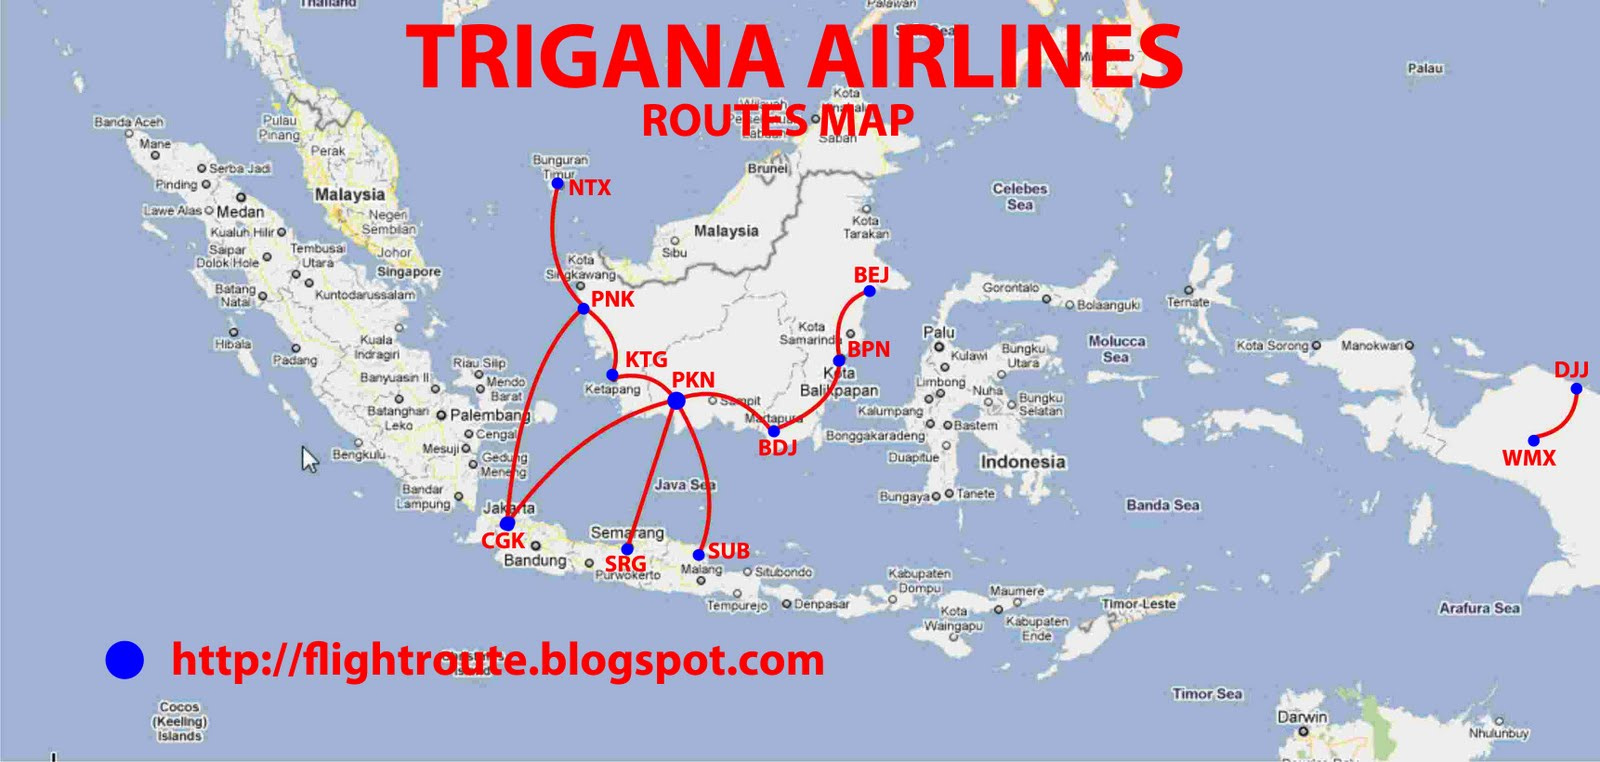 routes map: Trigana Air Routes Map